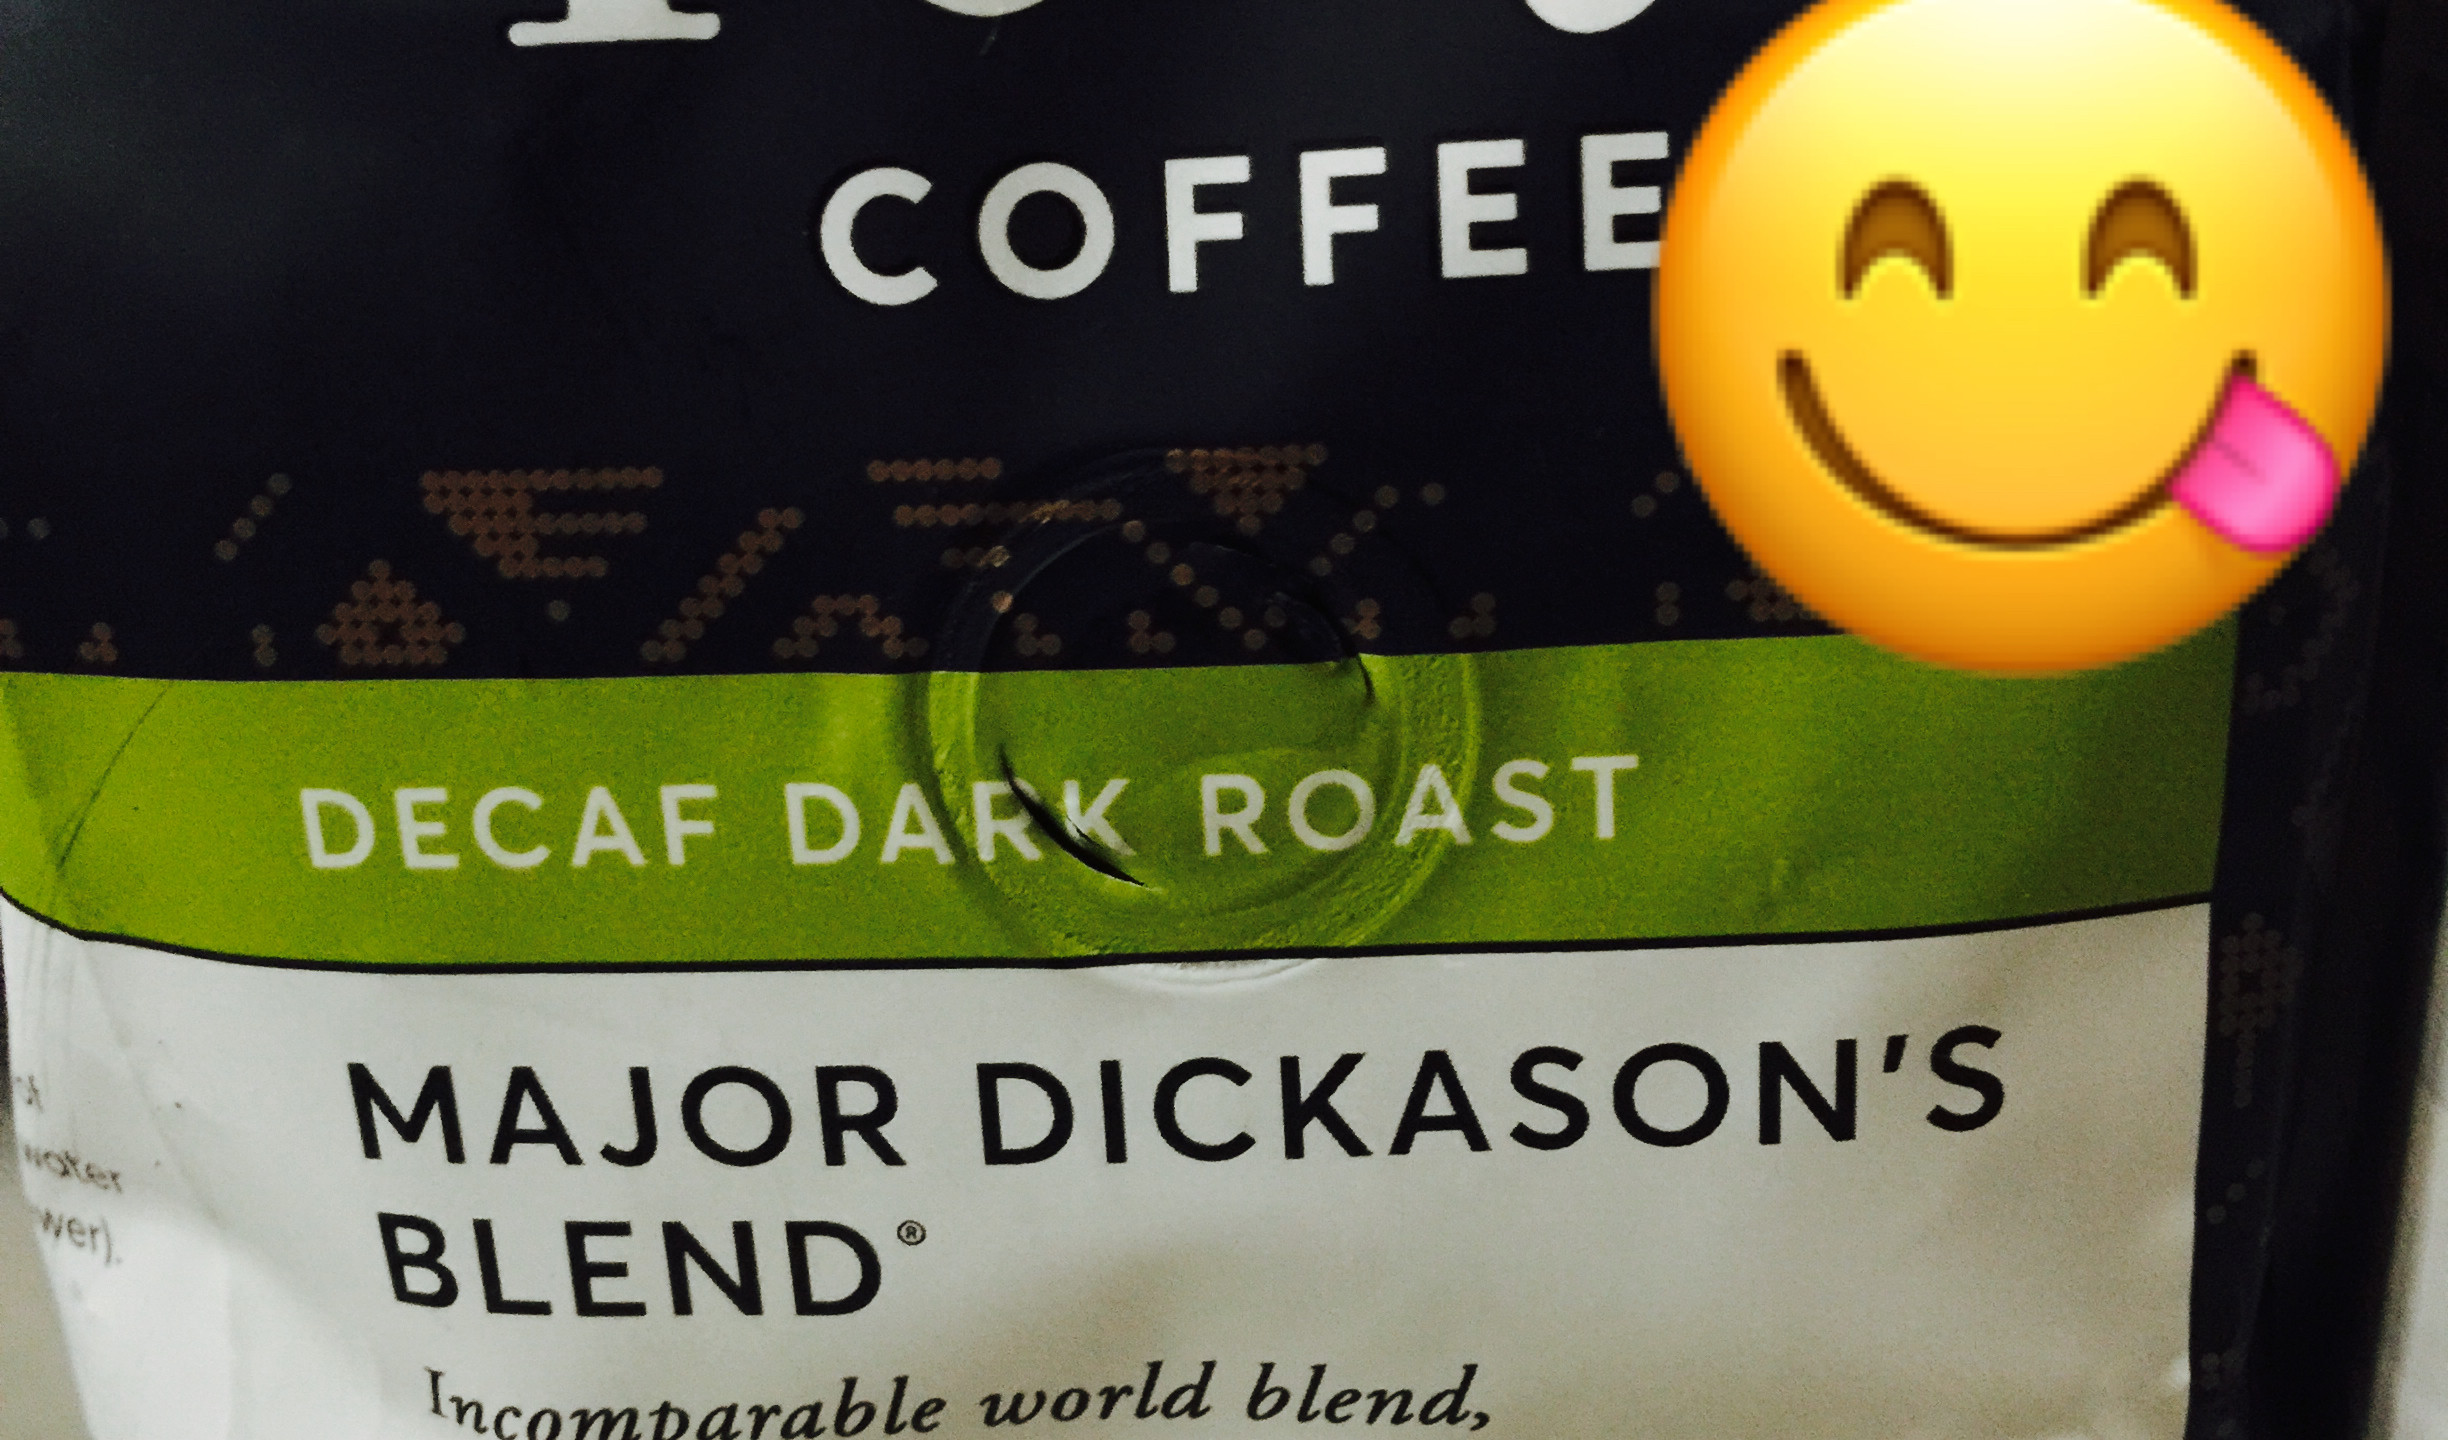 Just delicious coffee!